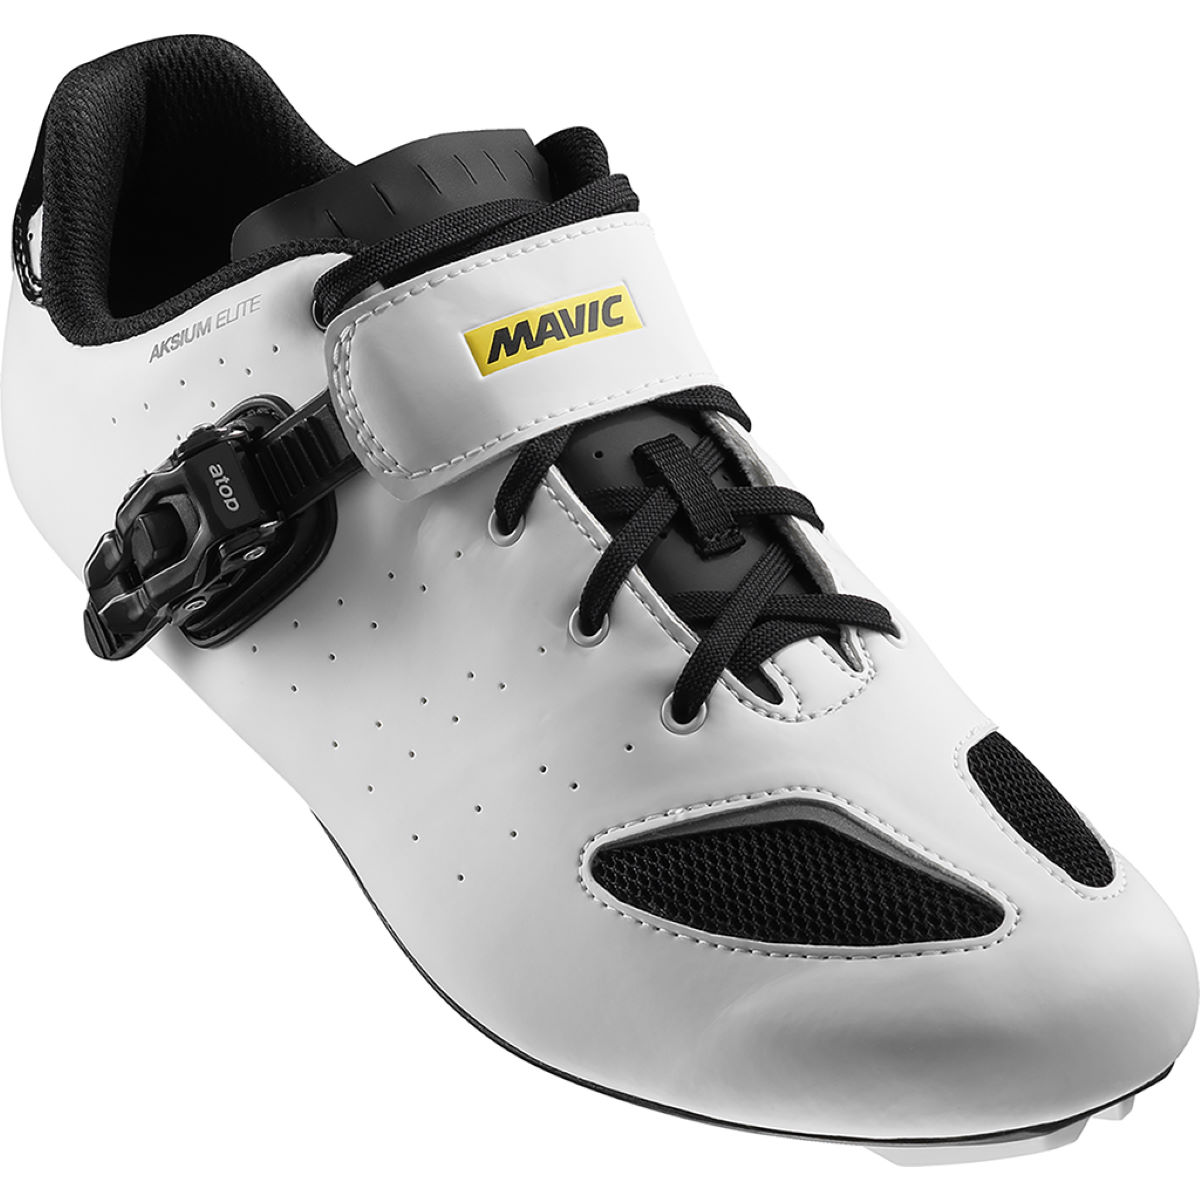 Chaussures de route Mavic Aksium Elite III - 6,5 UK Blanc